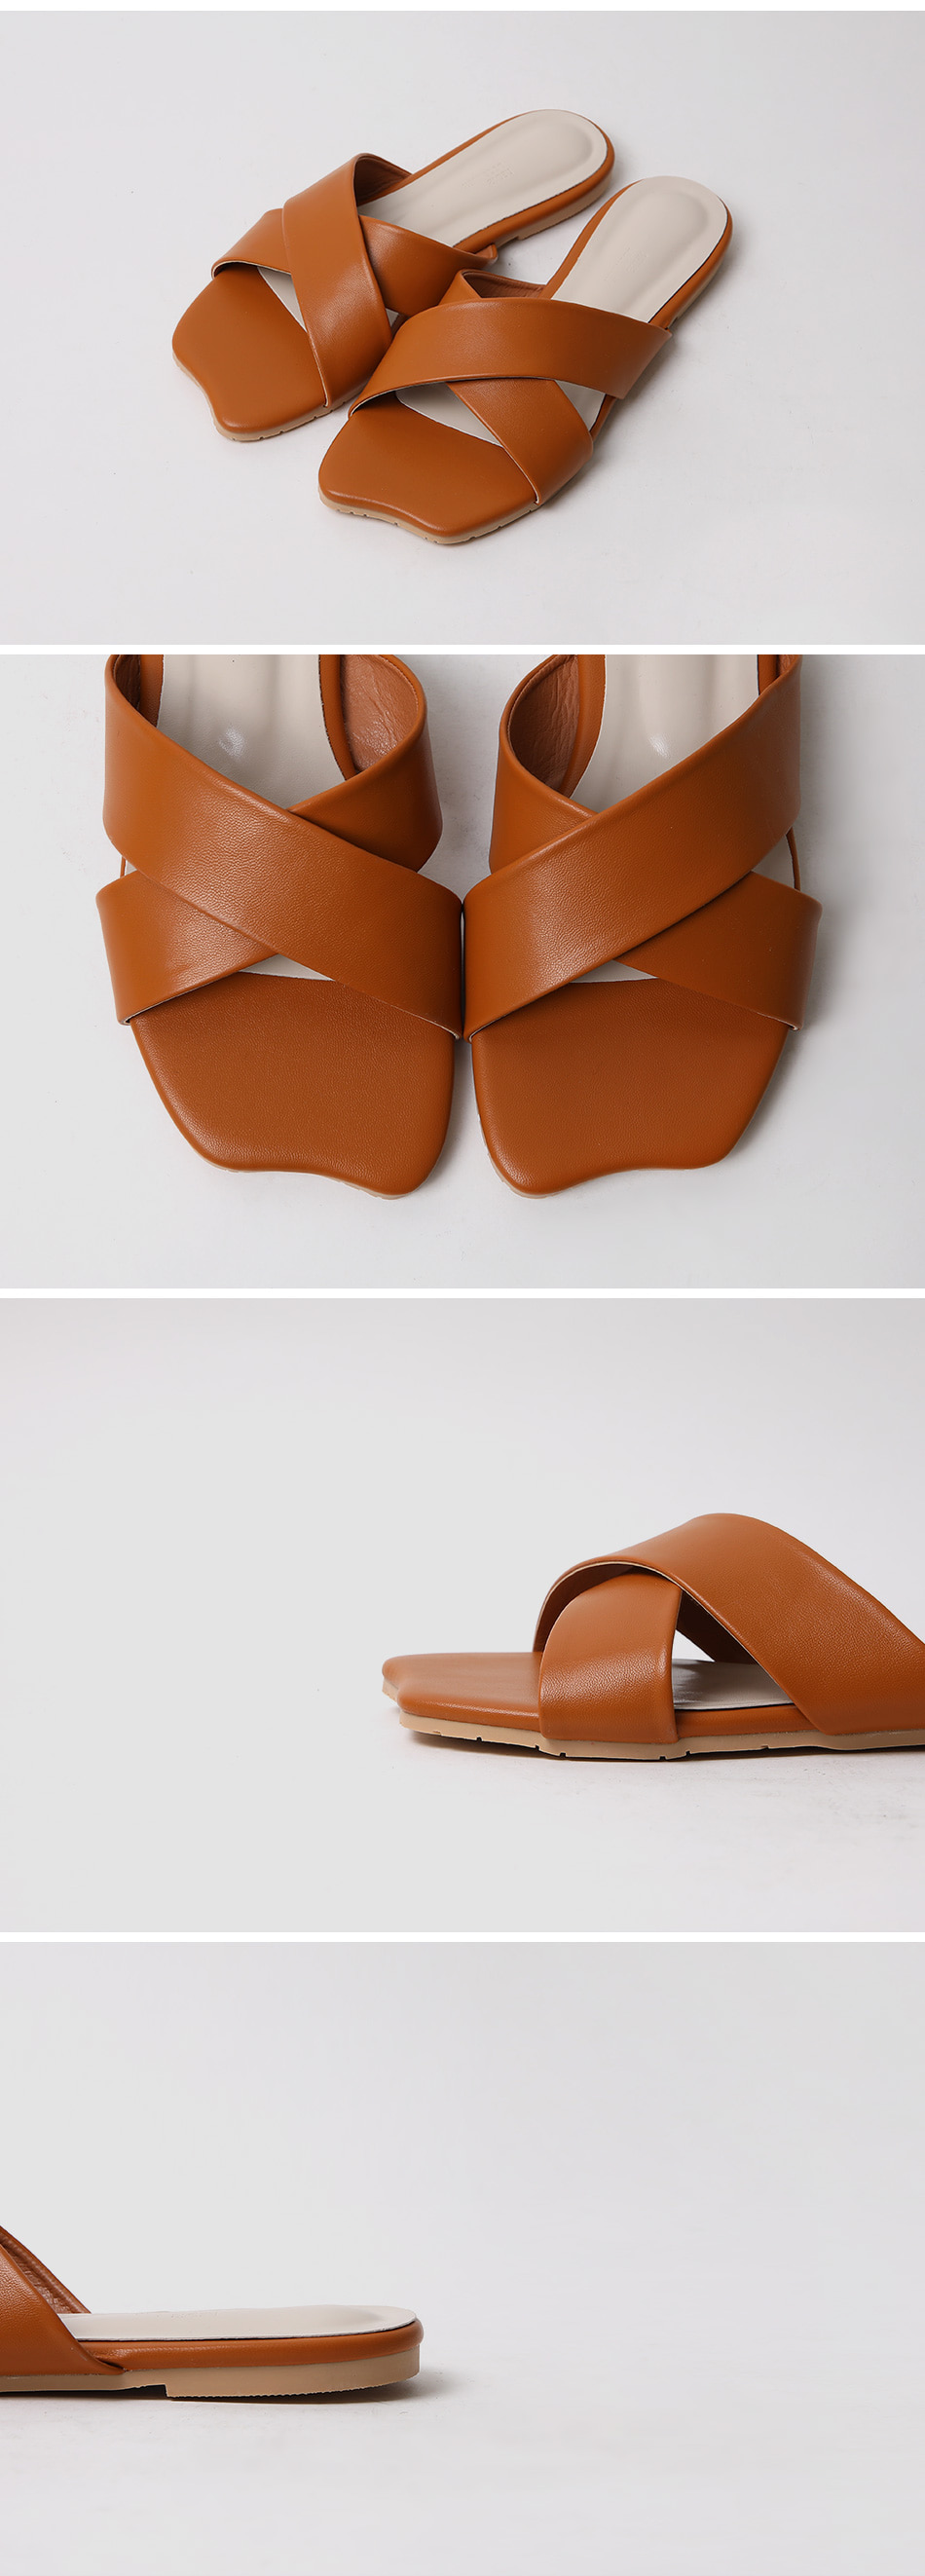 Juceron Slippers 1cm